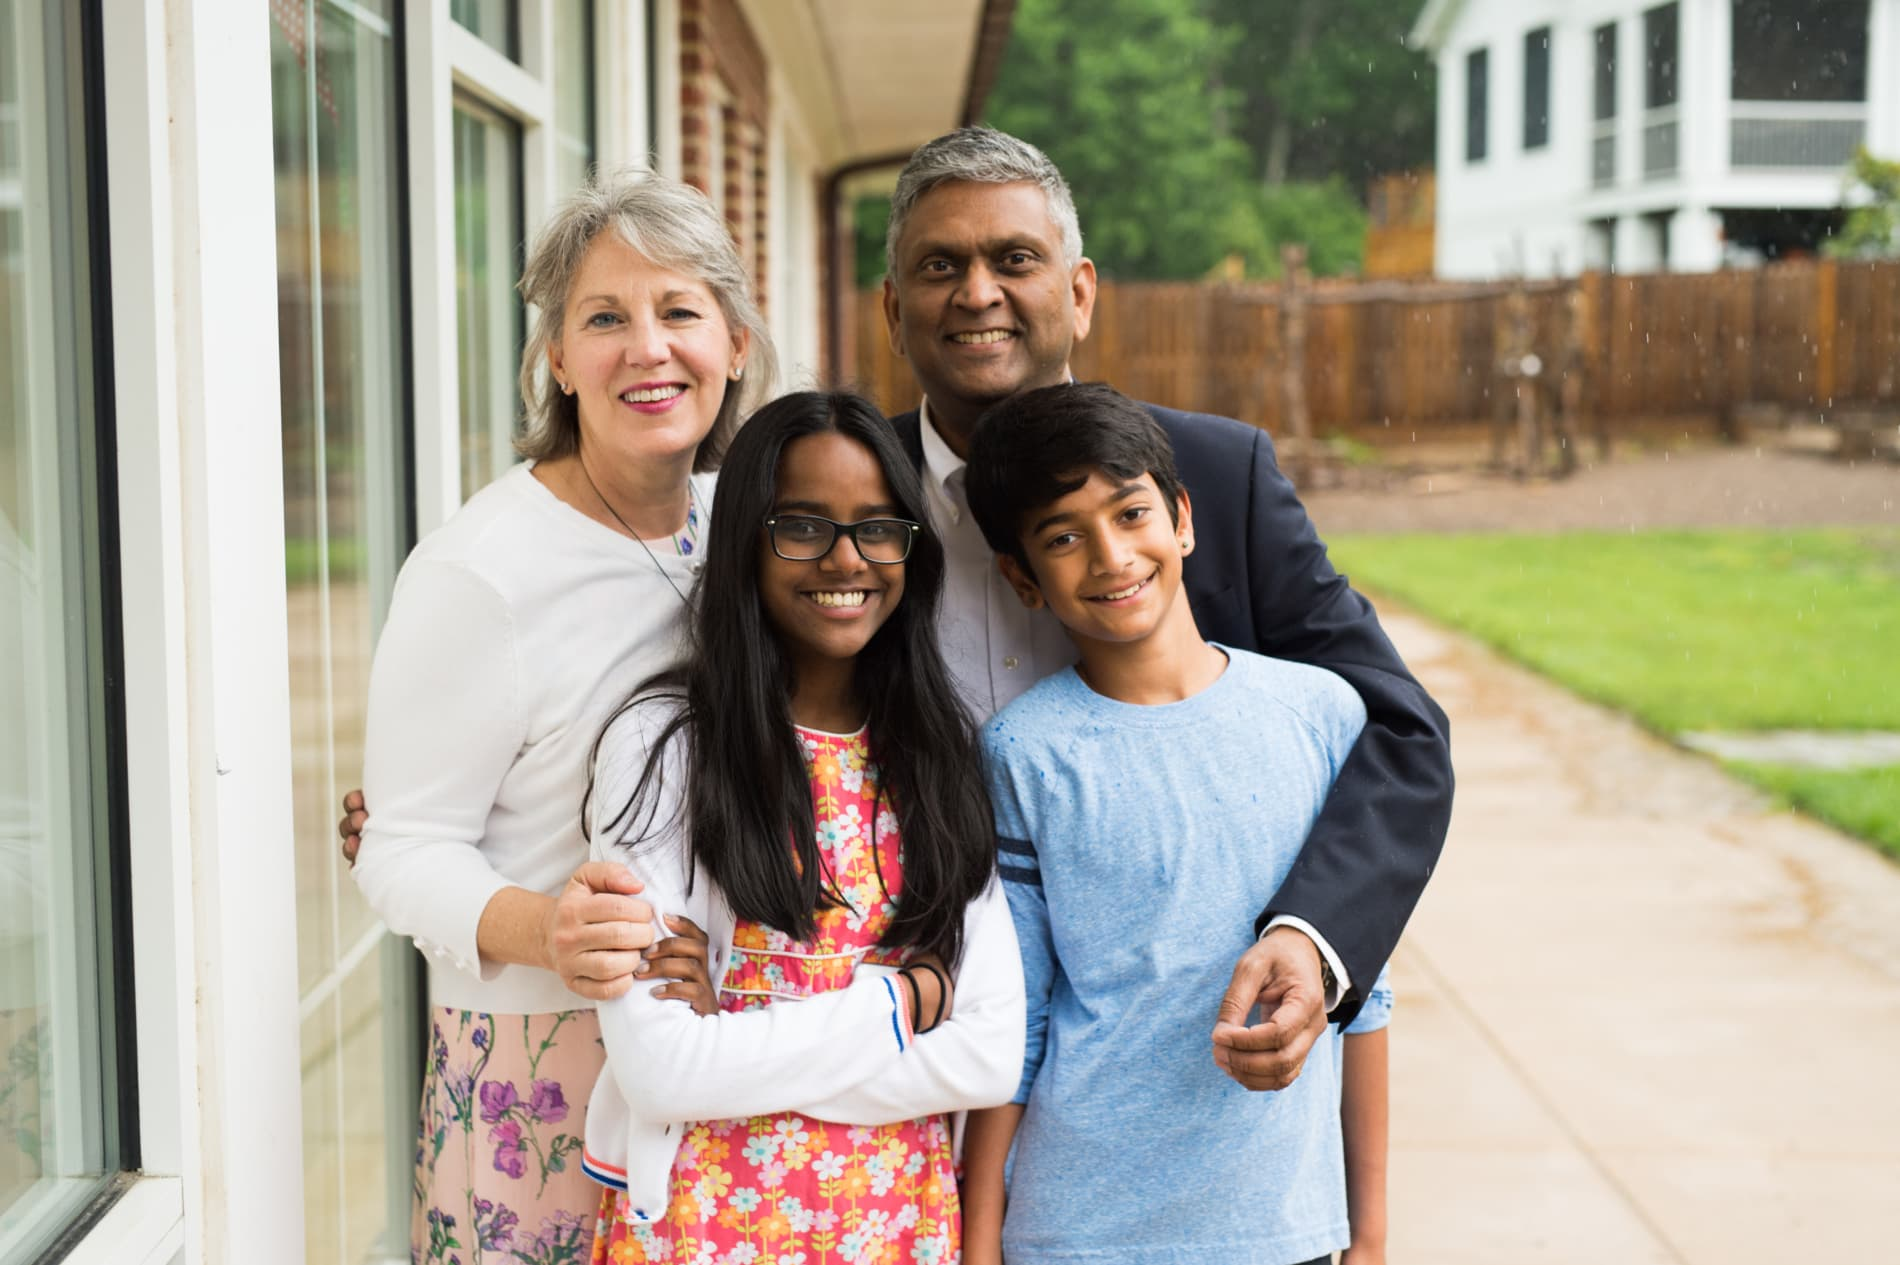 An interracial family of a mother, father, daughter and son